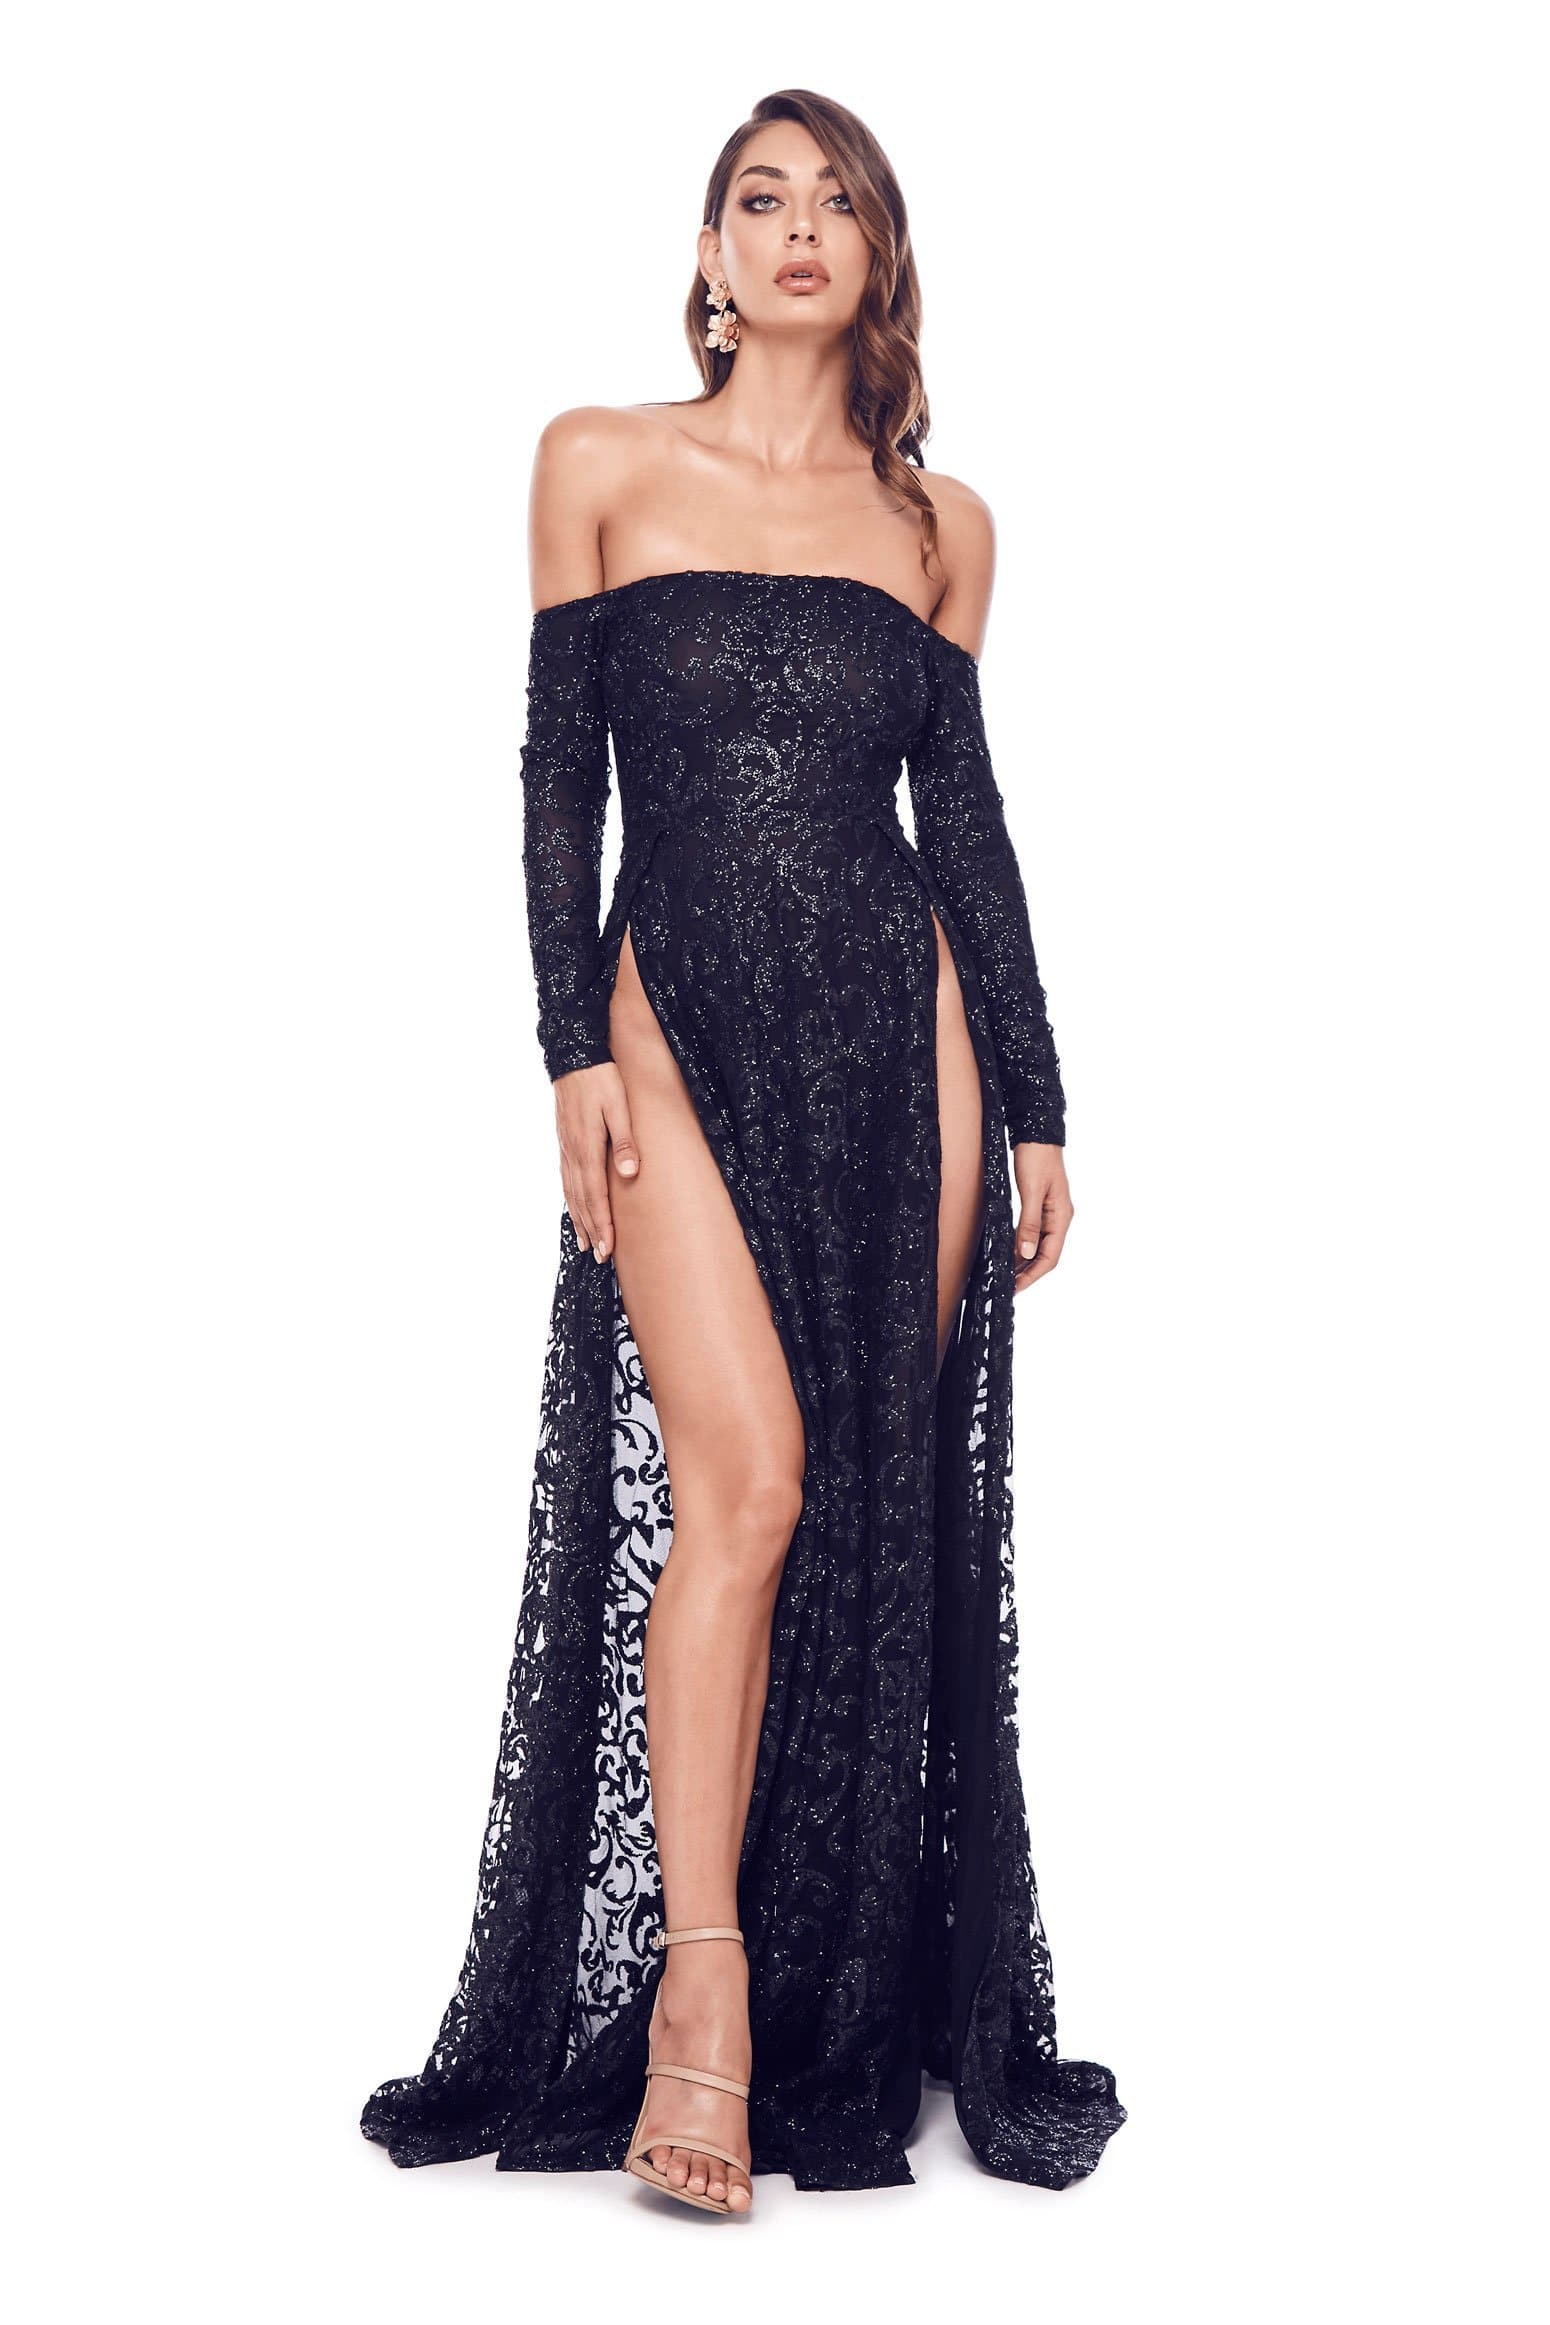 Flame Gown - Black